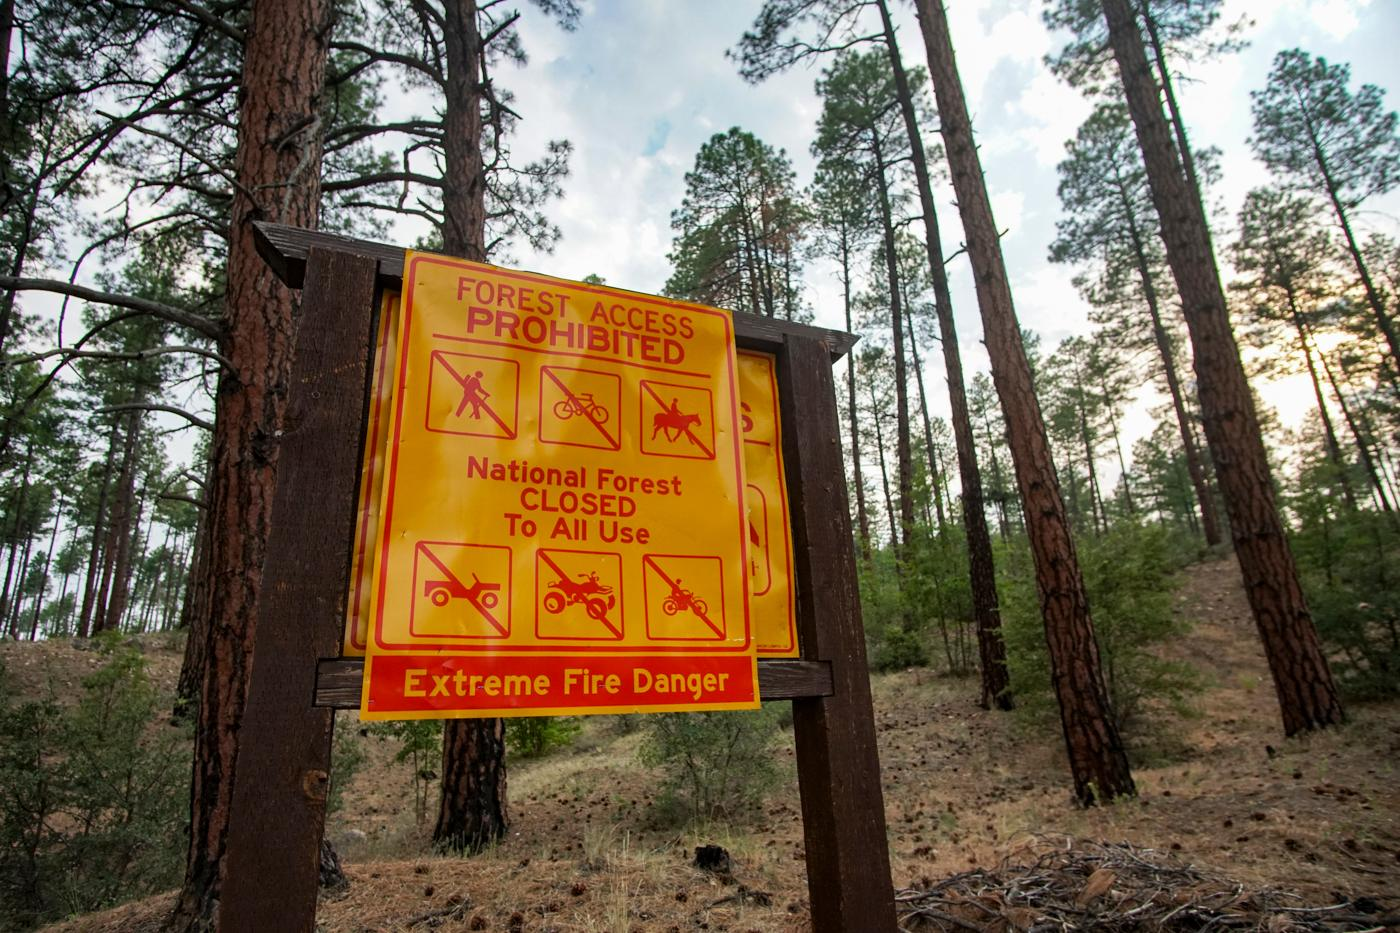 Arizona National Forests Close Due to Extreme Fire Danger: Yet another example of why Congress needs to act now on climate change